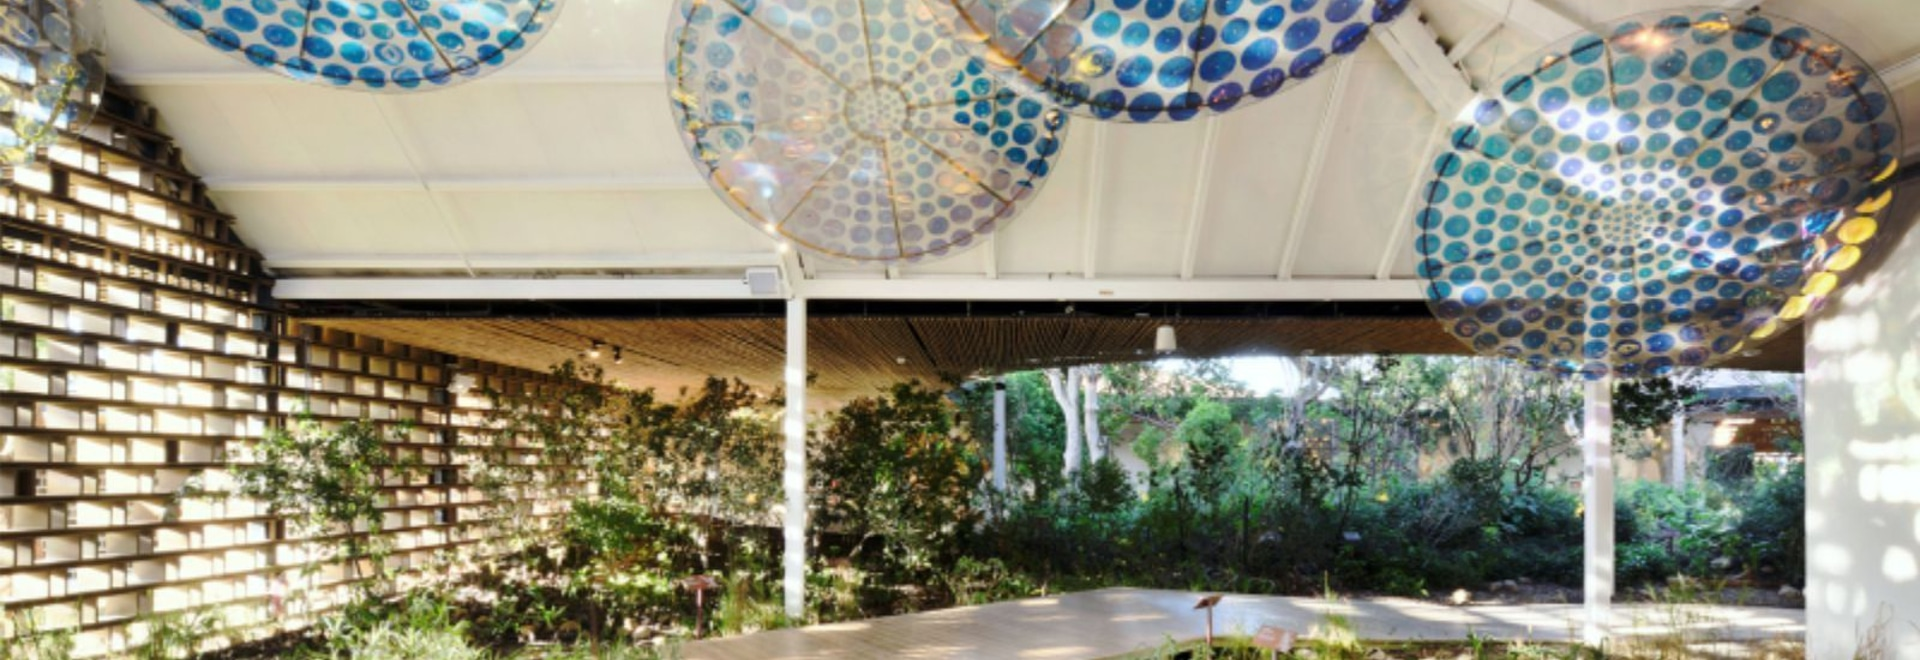 Taichung World Flora Expo, Discovery Pavilion by Cogitoimage International Co.